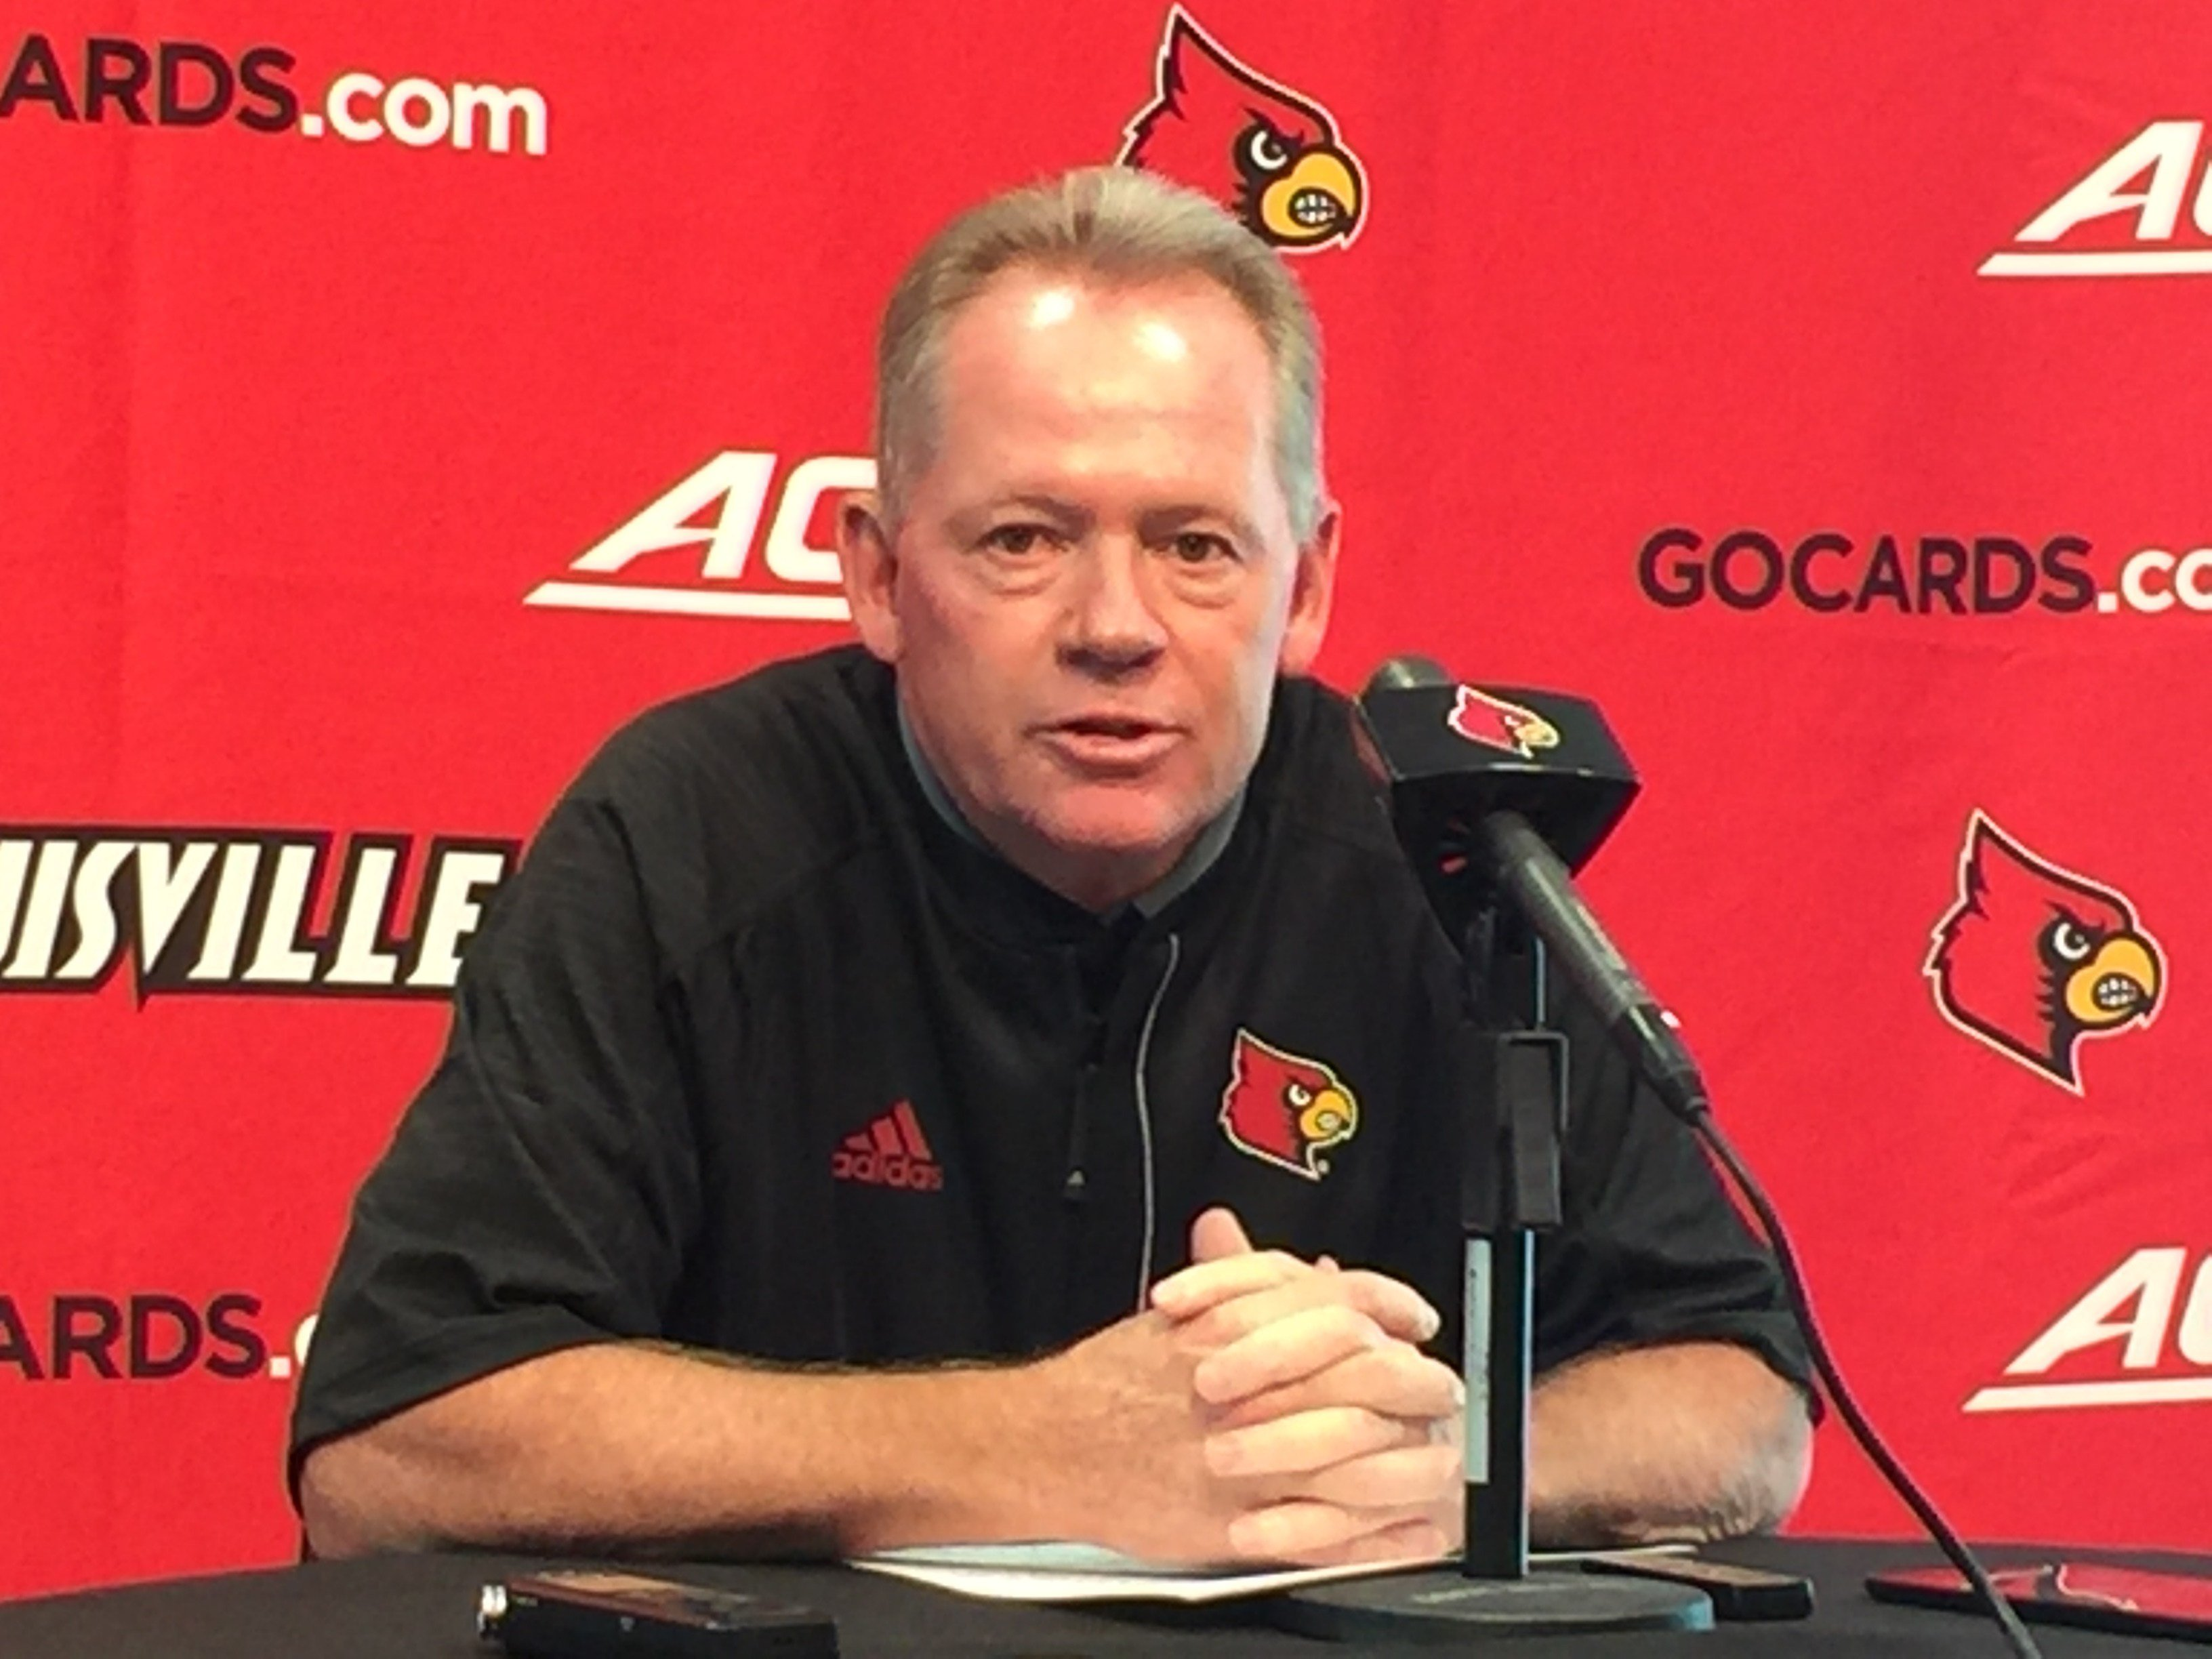 Bobby Petrino issued a statement about an issue with his Twitter account.